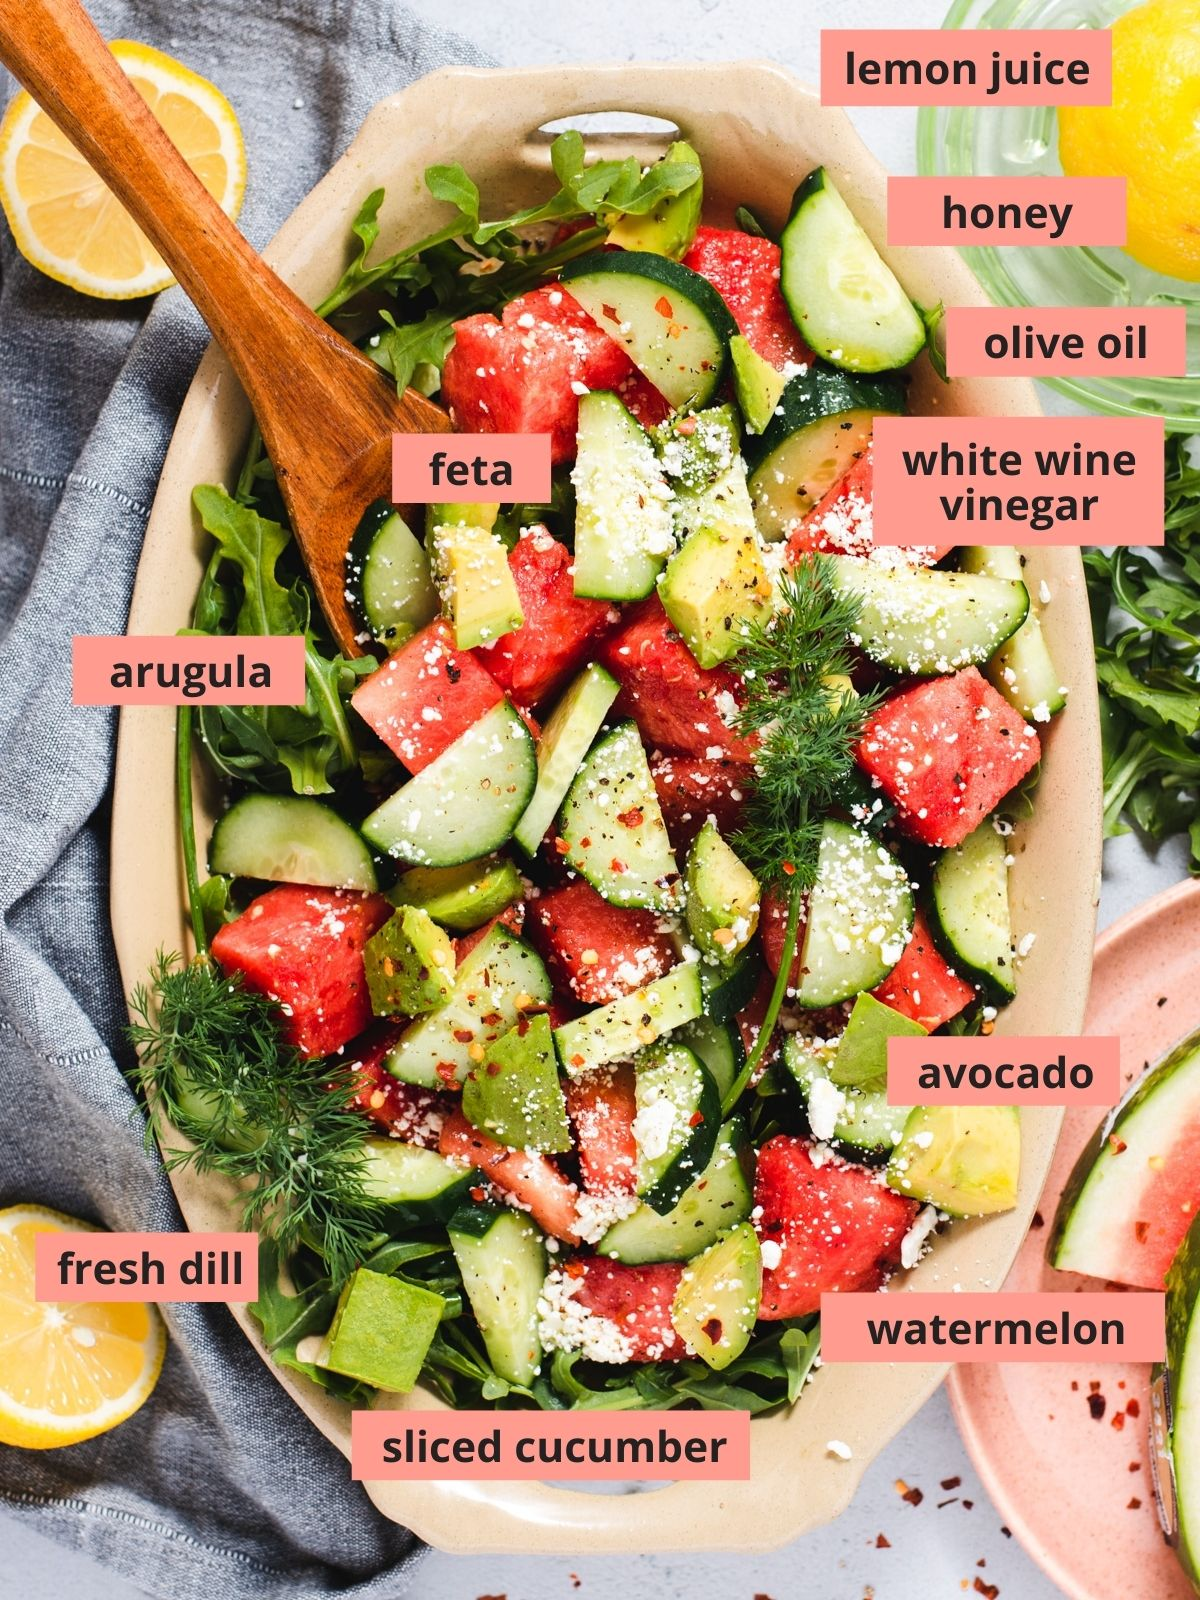 Labeled ingredients used to make watermelon cucumber salad